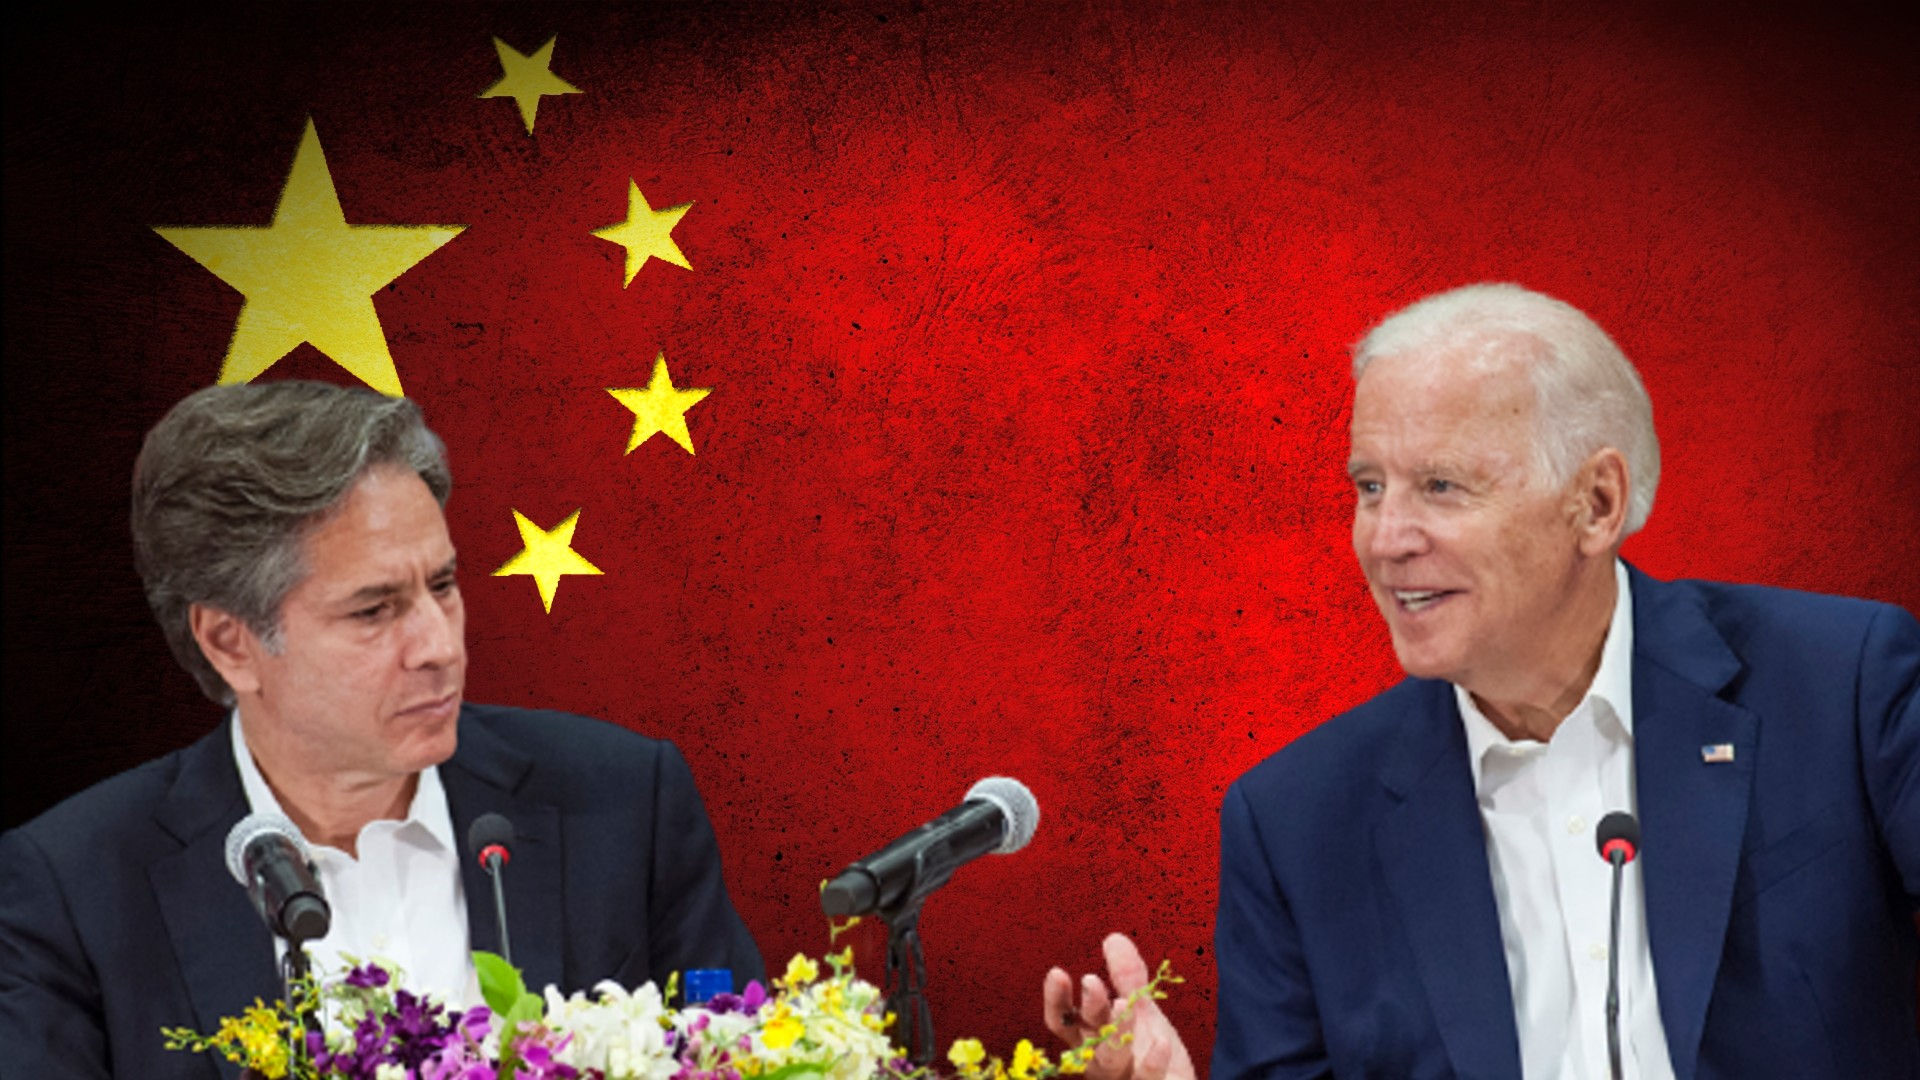 Biden Doesn't Plan To 'Contain China,' Reveals Secretary of State Blinken. - The National Pulse